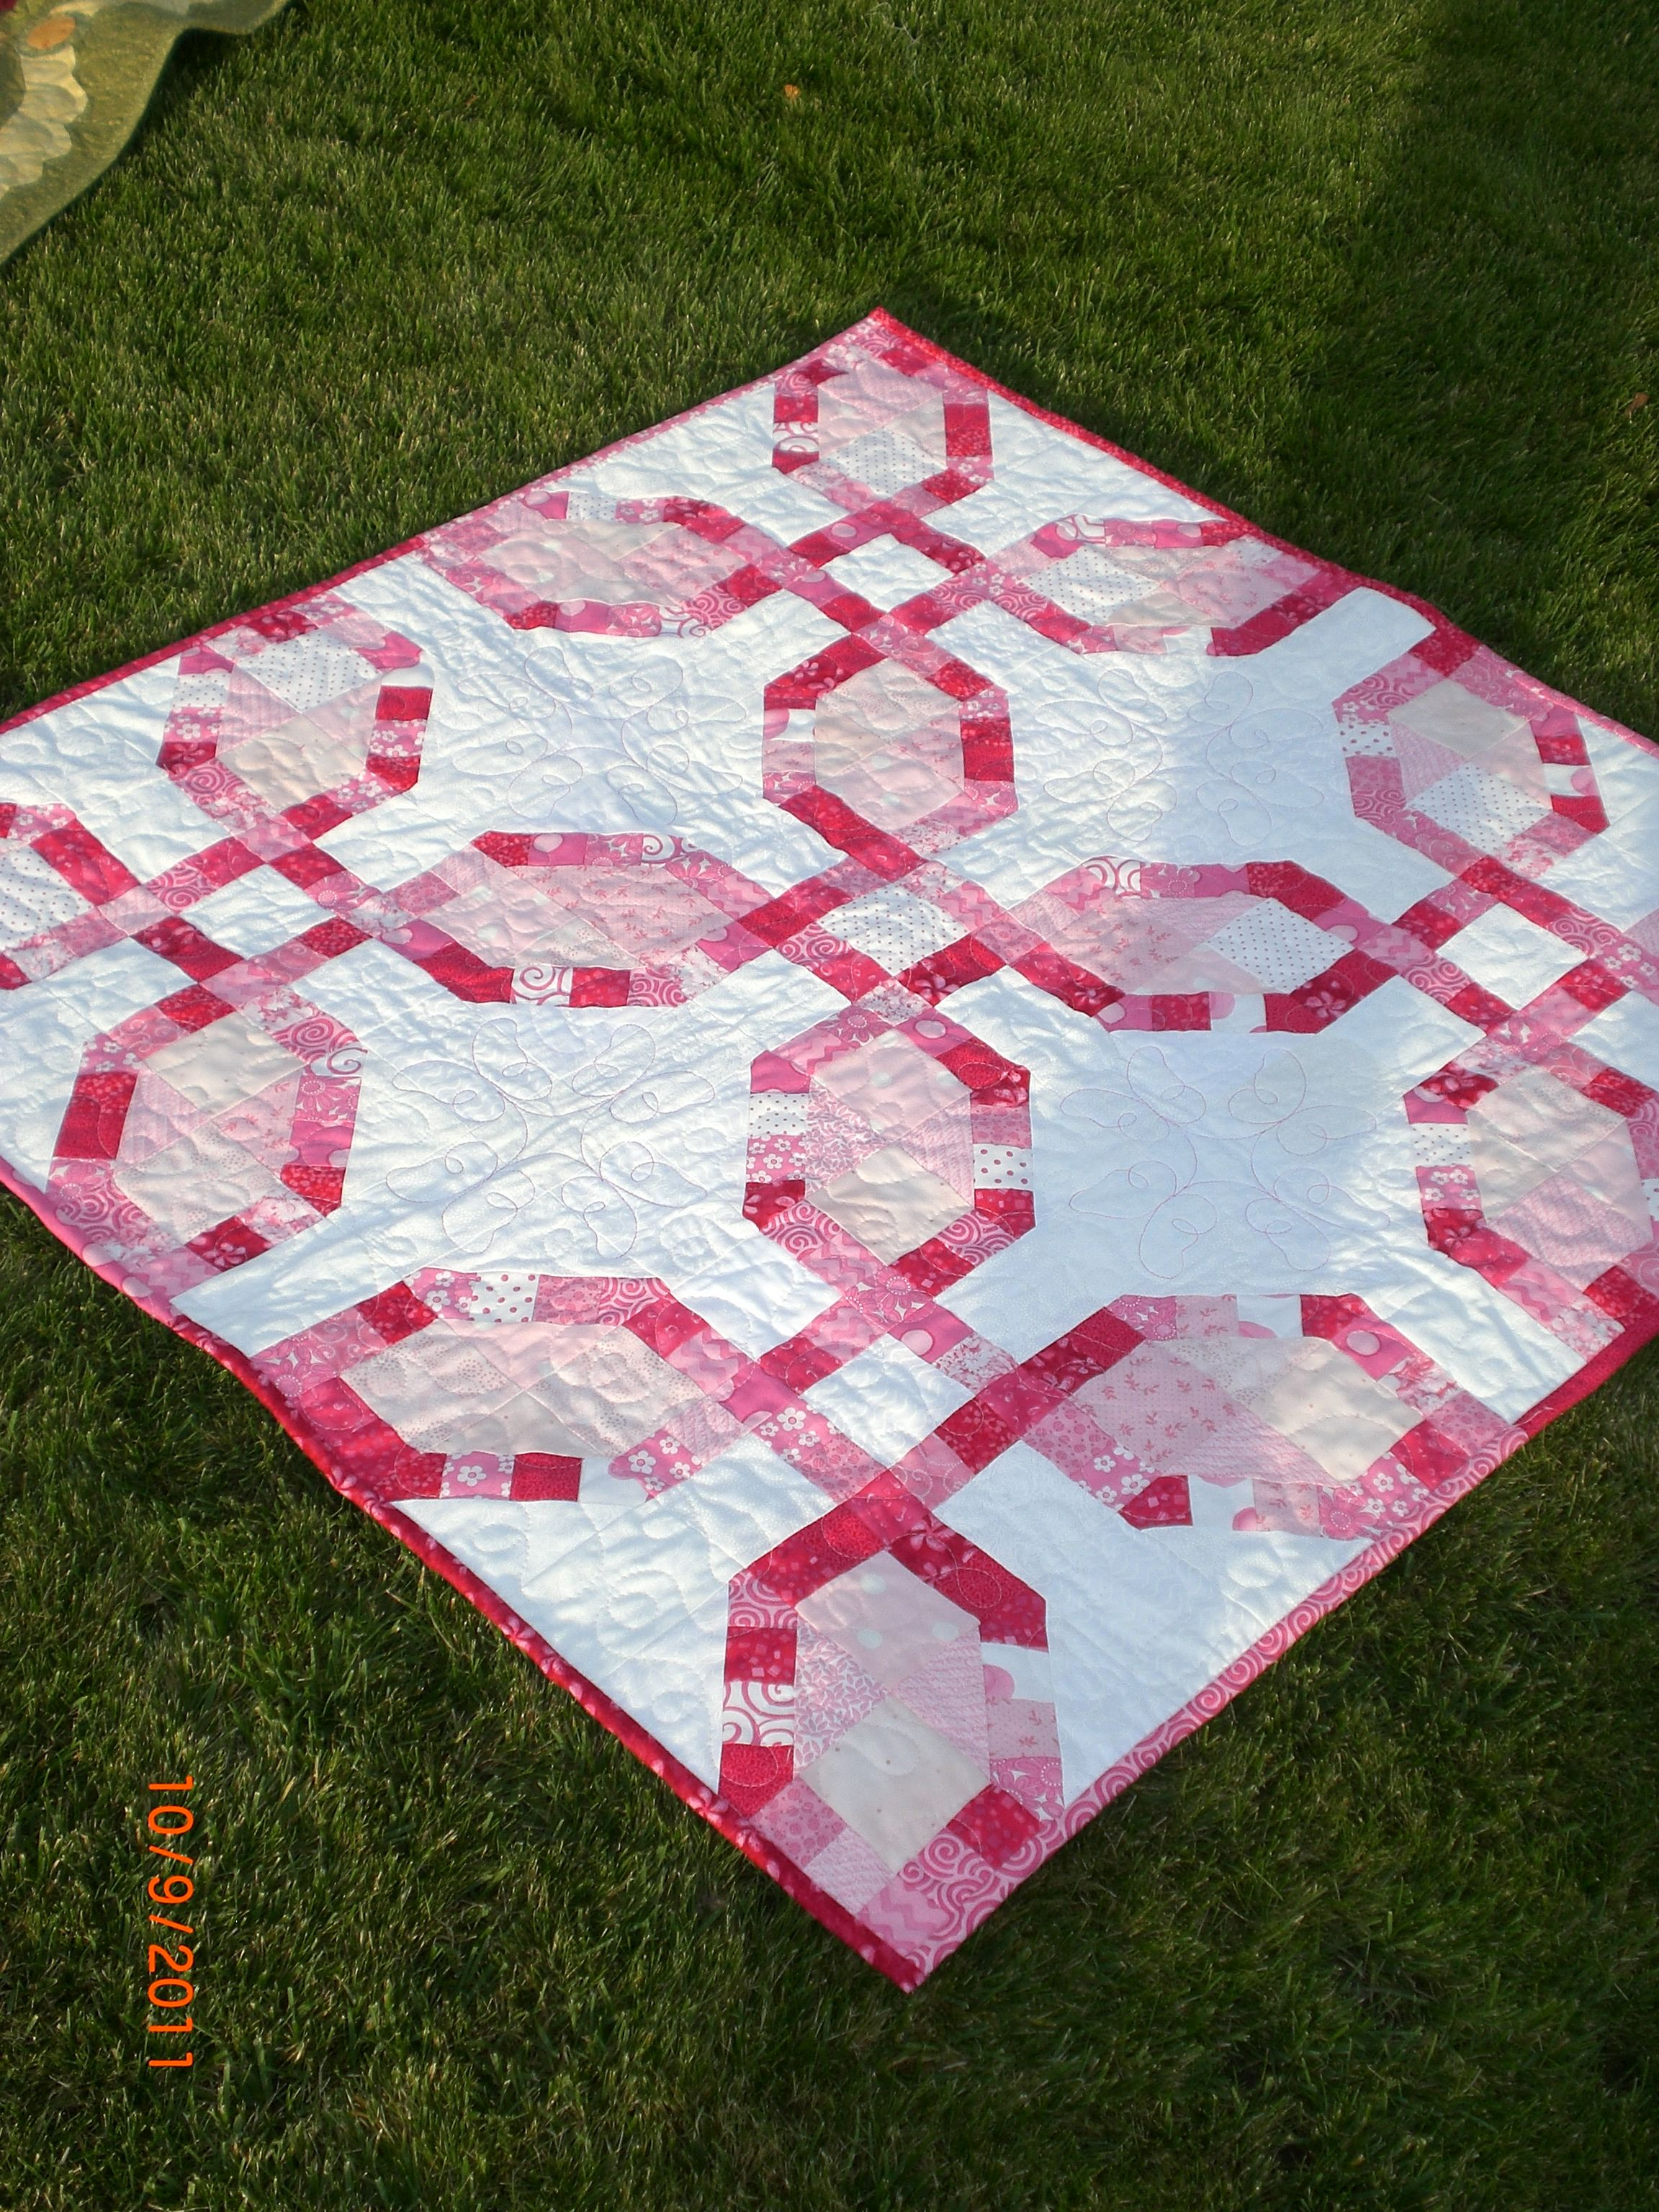 Pink baby scrap quilt for Charli fall 2011 | Quilting, Sewing ...